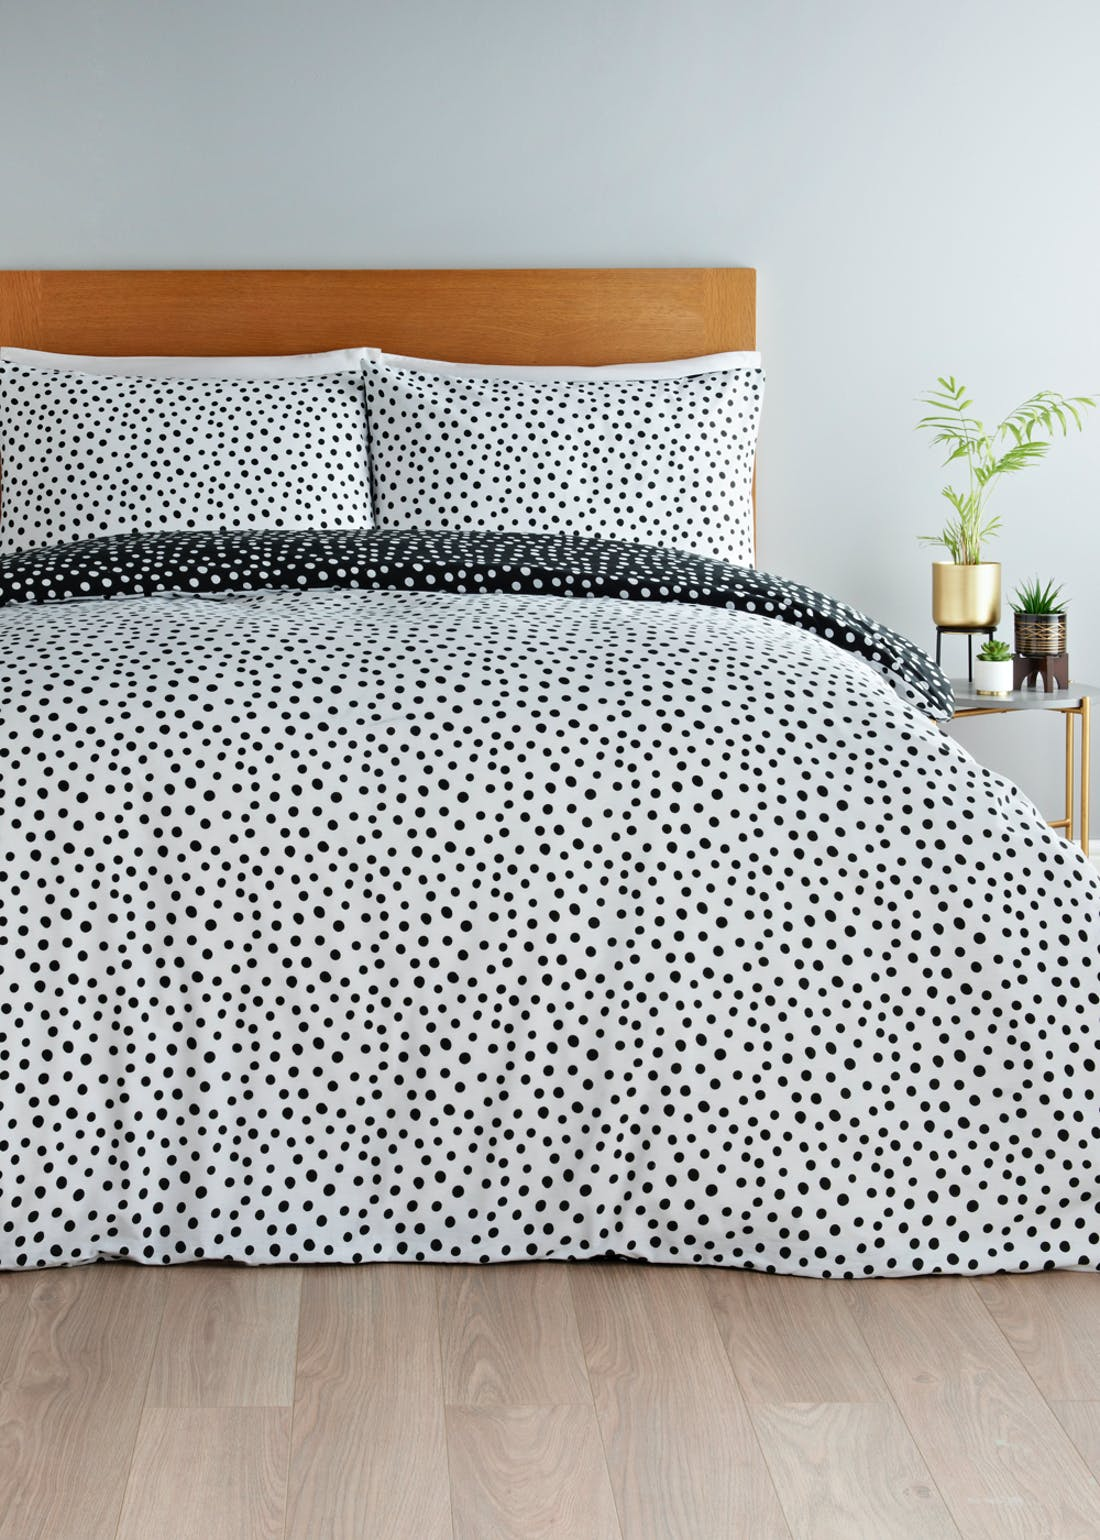 Polka Dot Duvet Cover